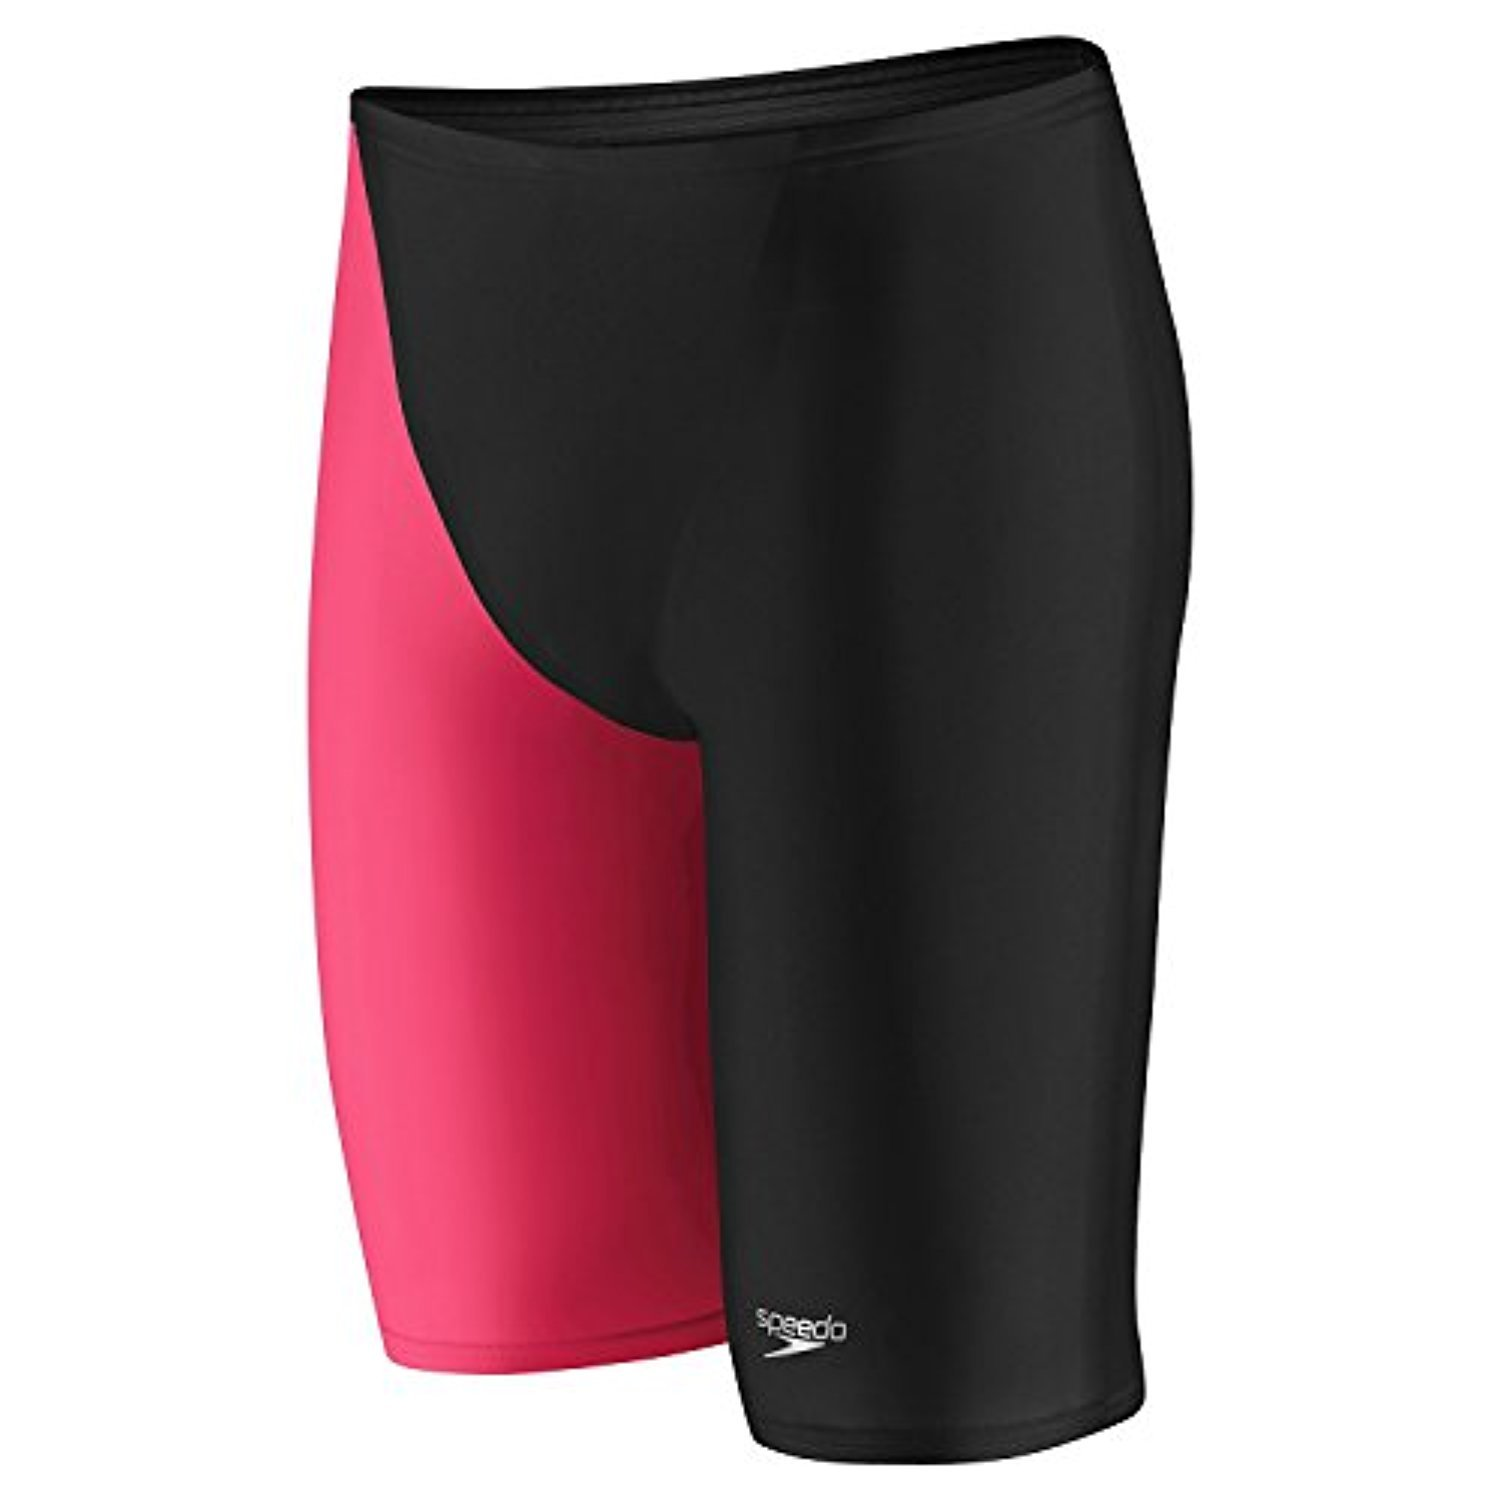 Speedo 7050711 Mens LZR Elite 2 High Waist Jammer